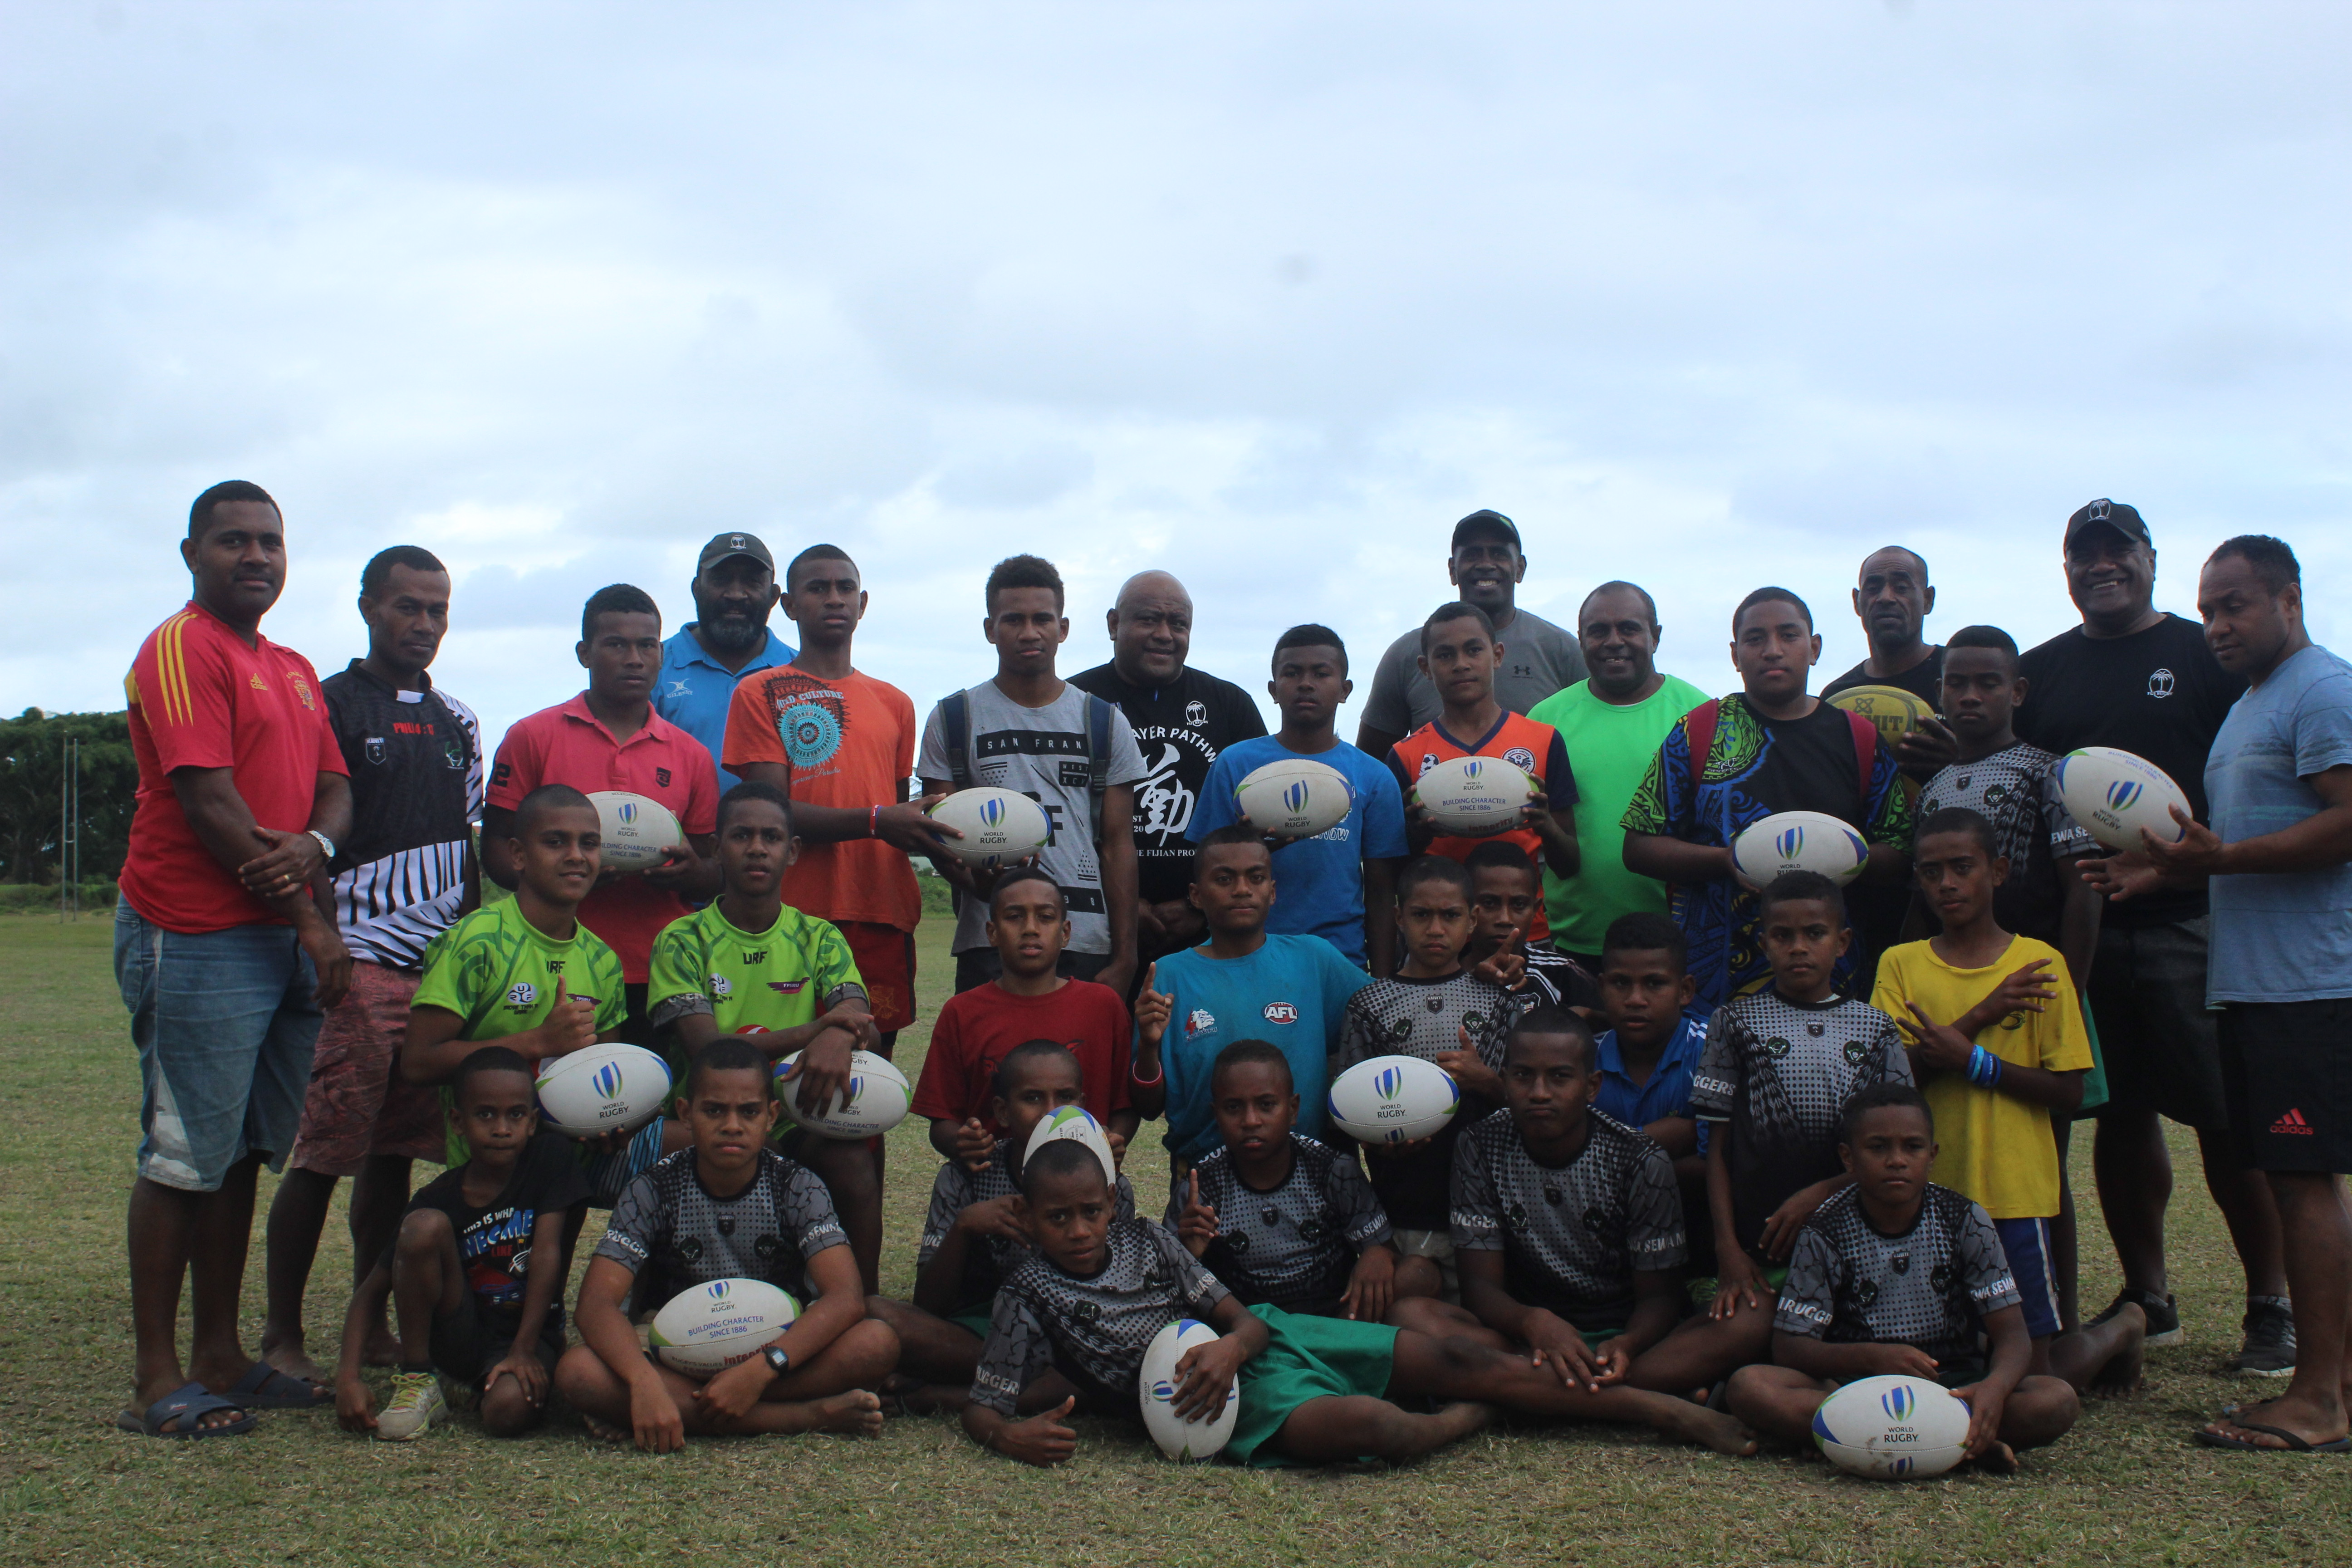 Kadavu kaji rugby players with former Fiji Airways Flying Fijians reps at St Marcellin Primary School ground in Suva on August 16, 2018 Photo: Karalaini Tavi